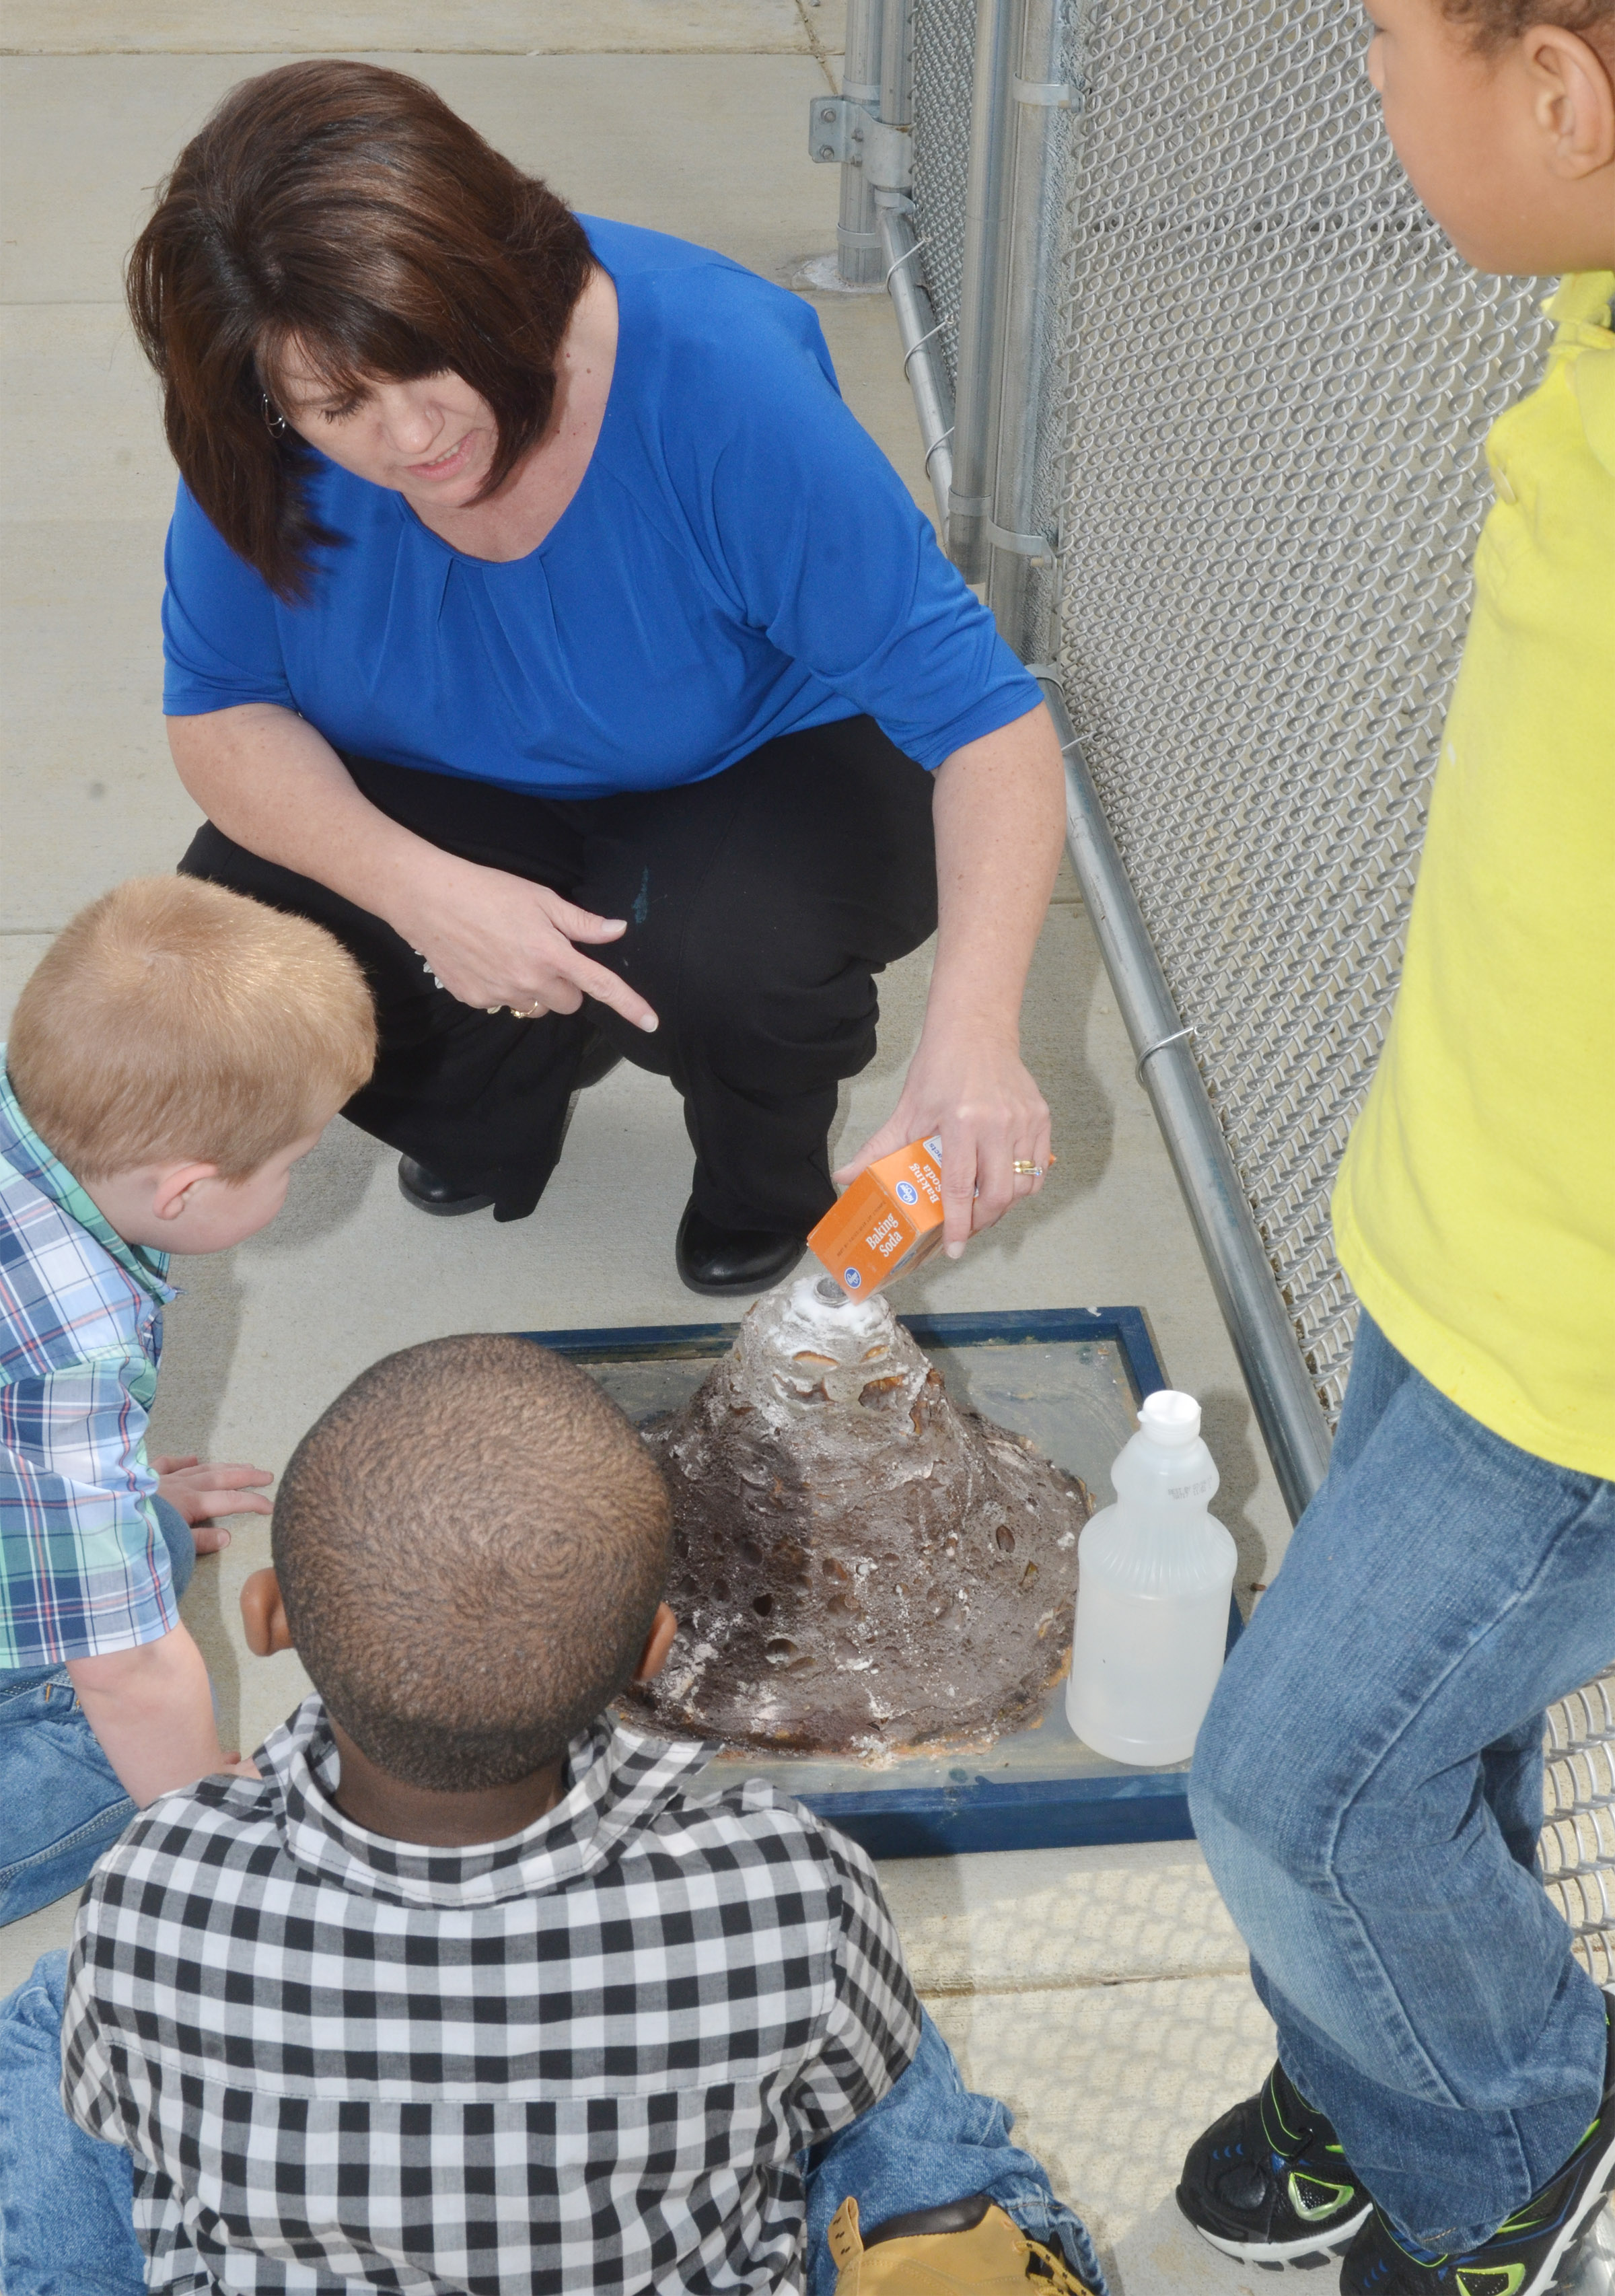 CES preschool teacher Denise Spencer adds baking soda to the volcano.